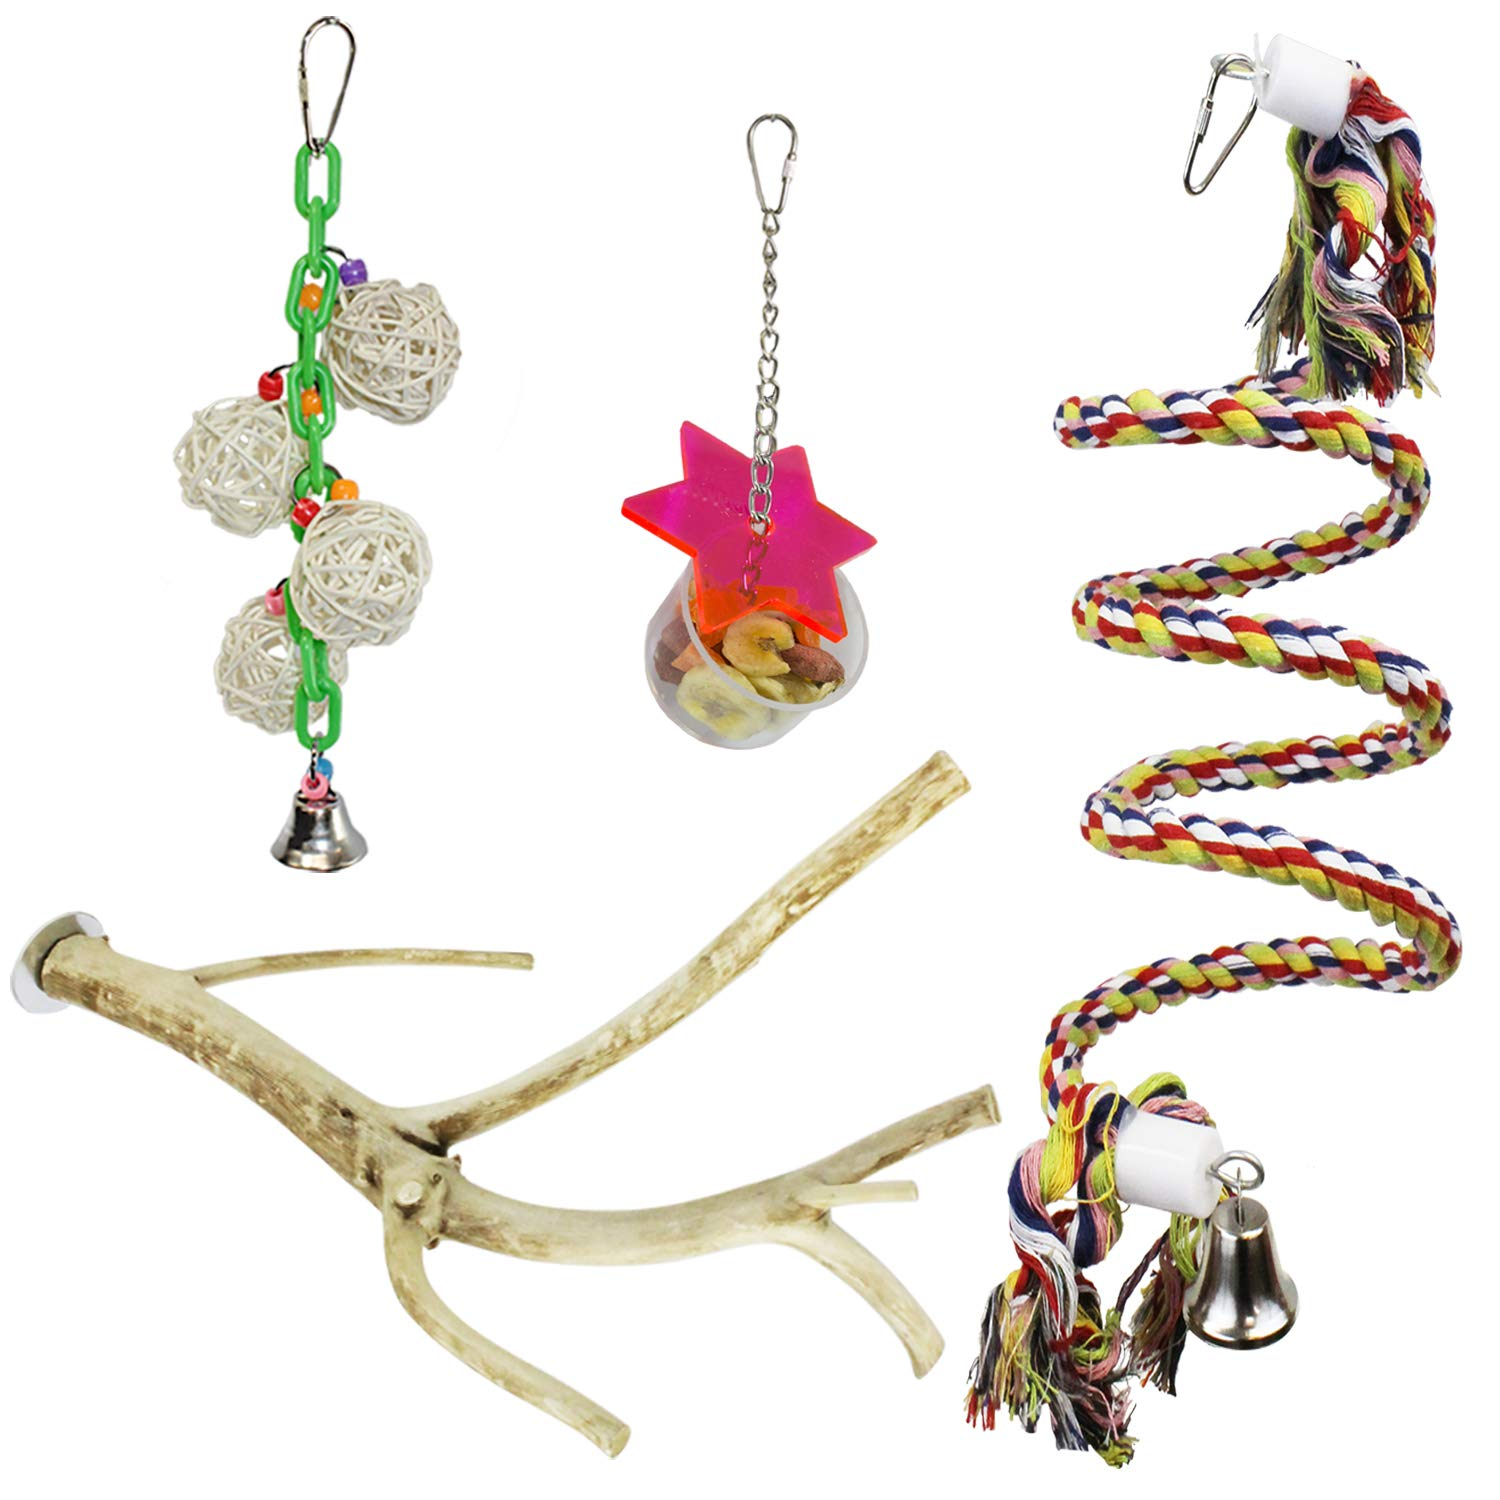 Cage Enhancement Set - Interactive Climbing Foraging Natural Branch Perch Cage Accessory Toy Bundle - For Sugar Gliders, Rats, Ferrets, Hamsters, Squirrels, Parrots, Birds, Marmosets, Degus, Monkeys by Exotic Nutrition